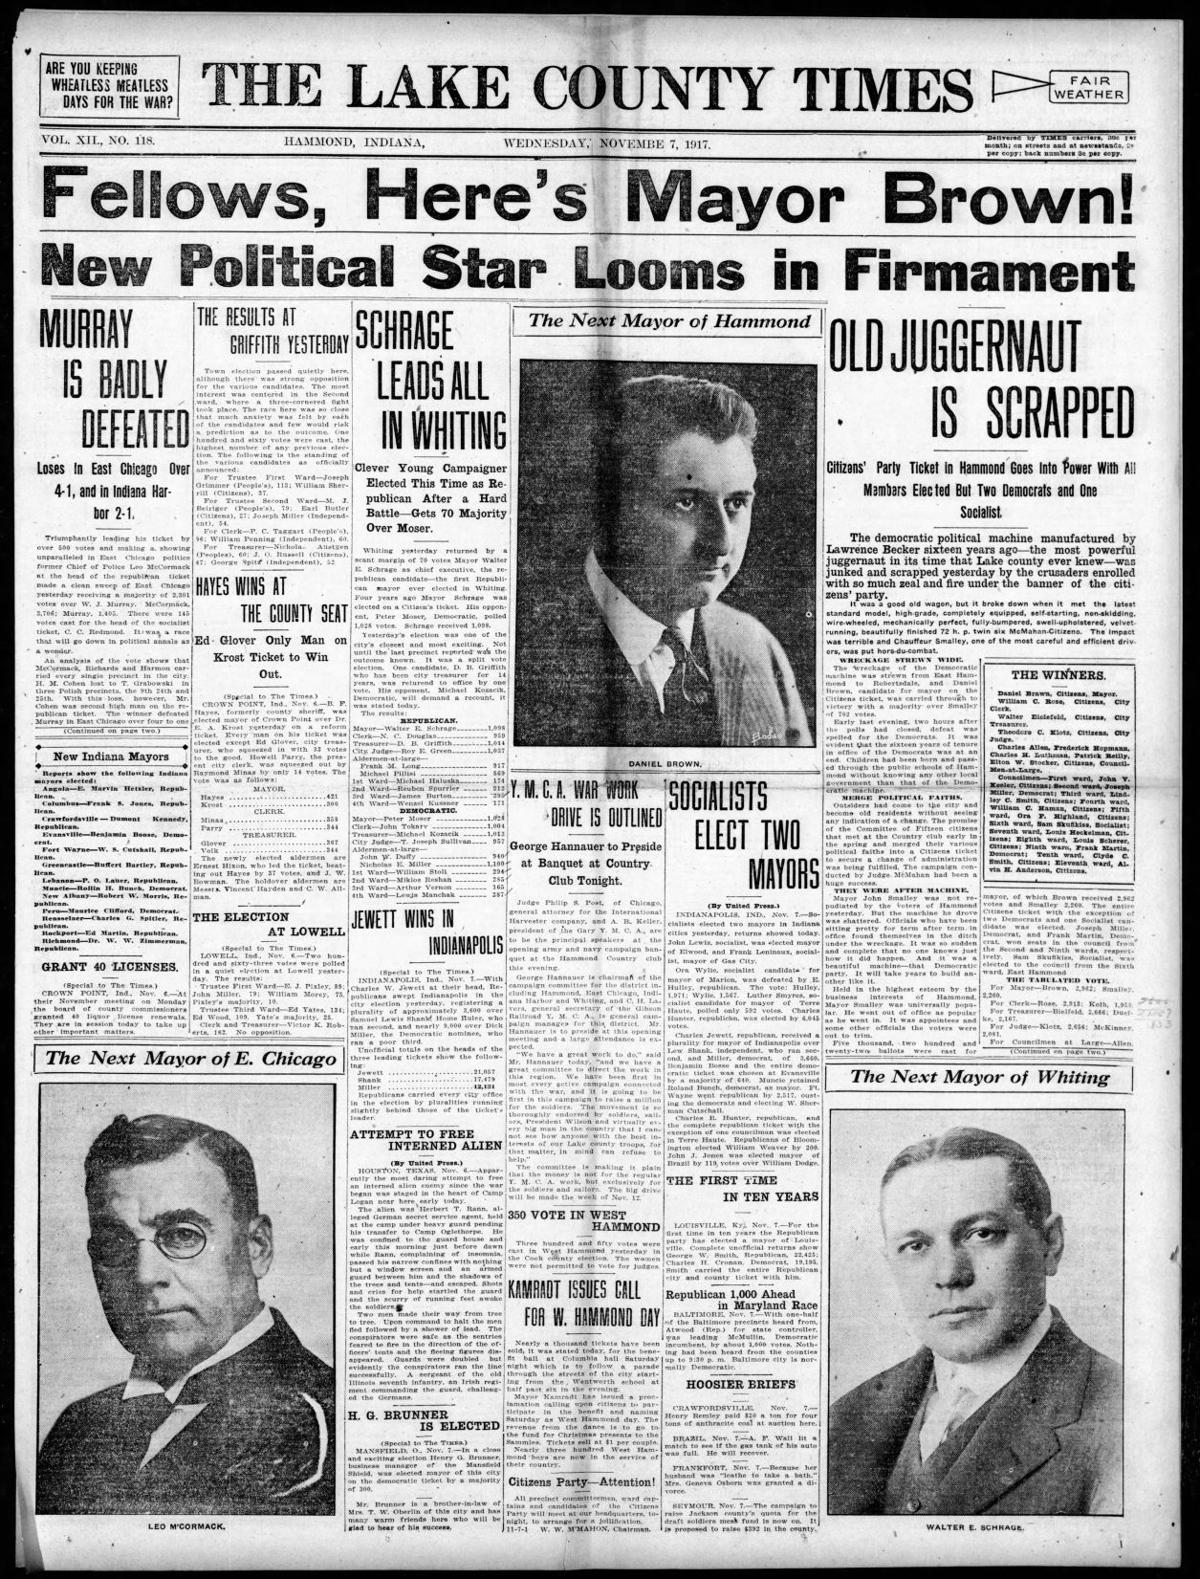 Nov. 7, 1917: New Political Star Looms in Firmament